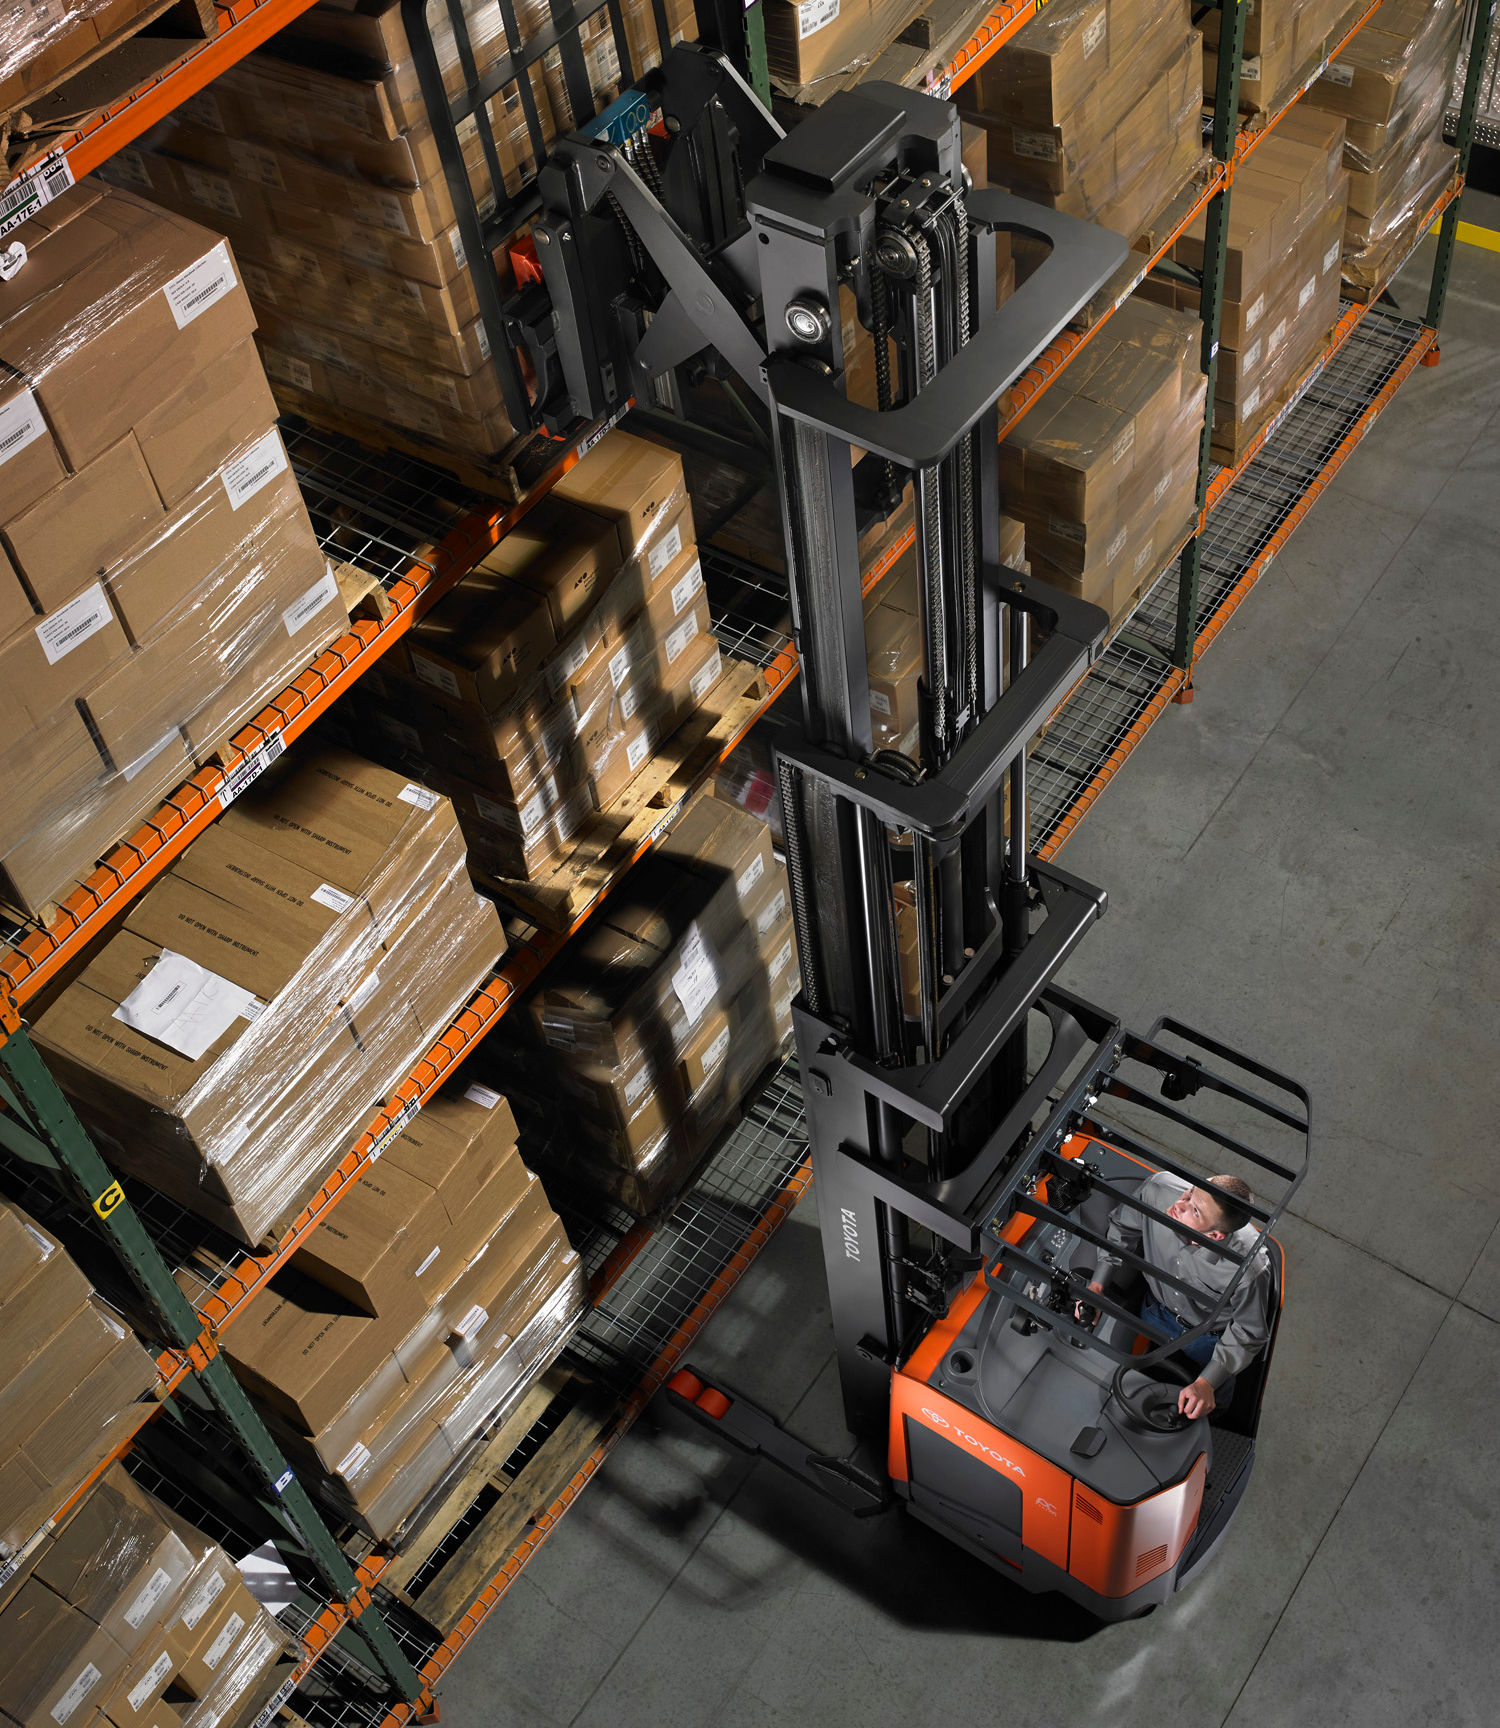 Toyota's Reach Truck forklift in use on the warehouse floor.